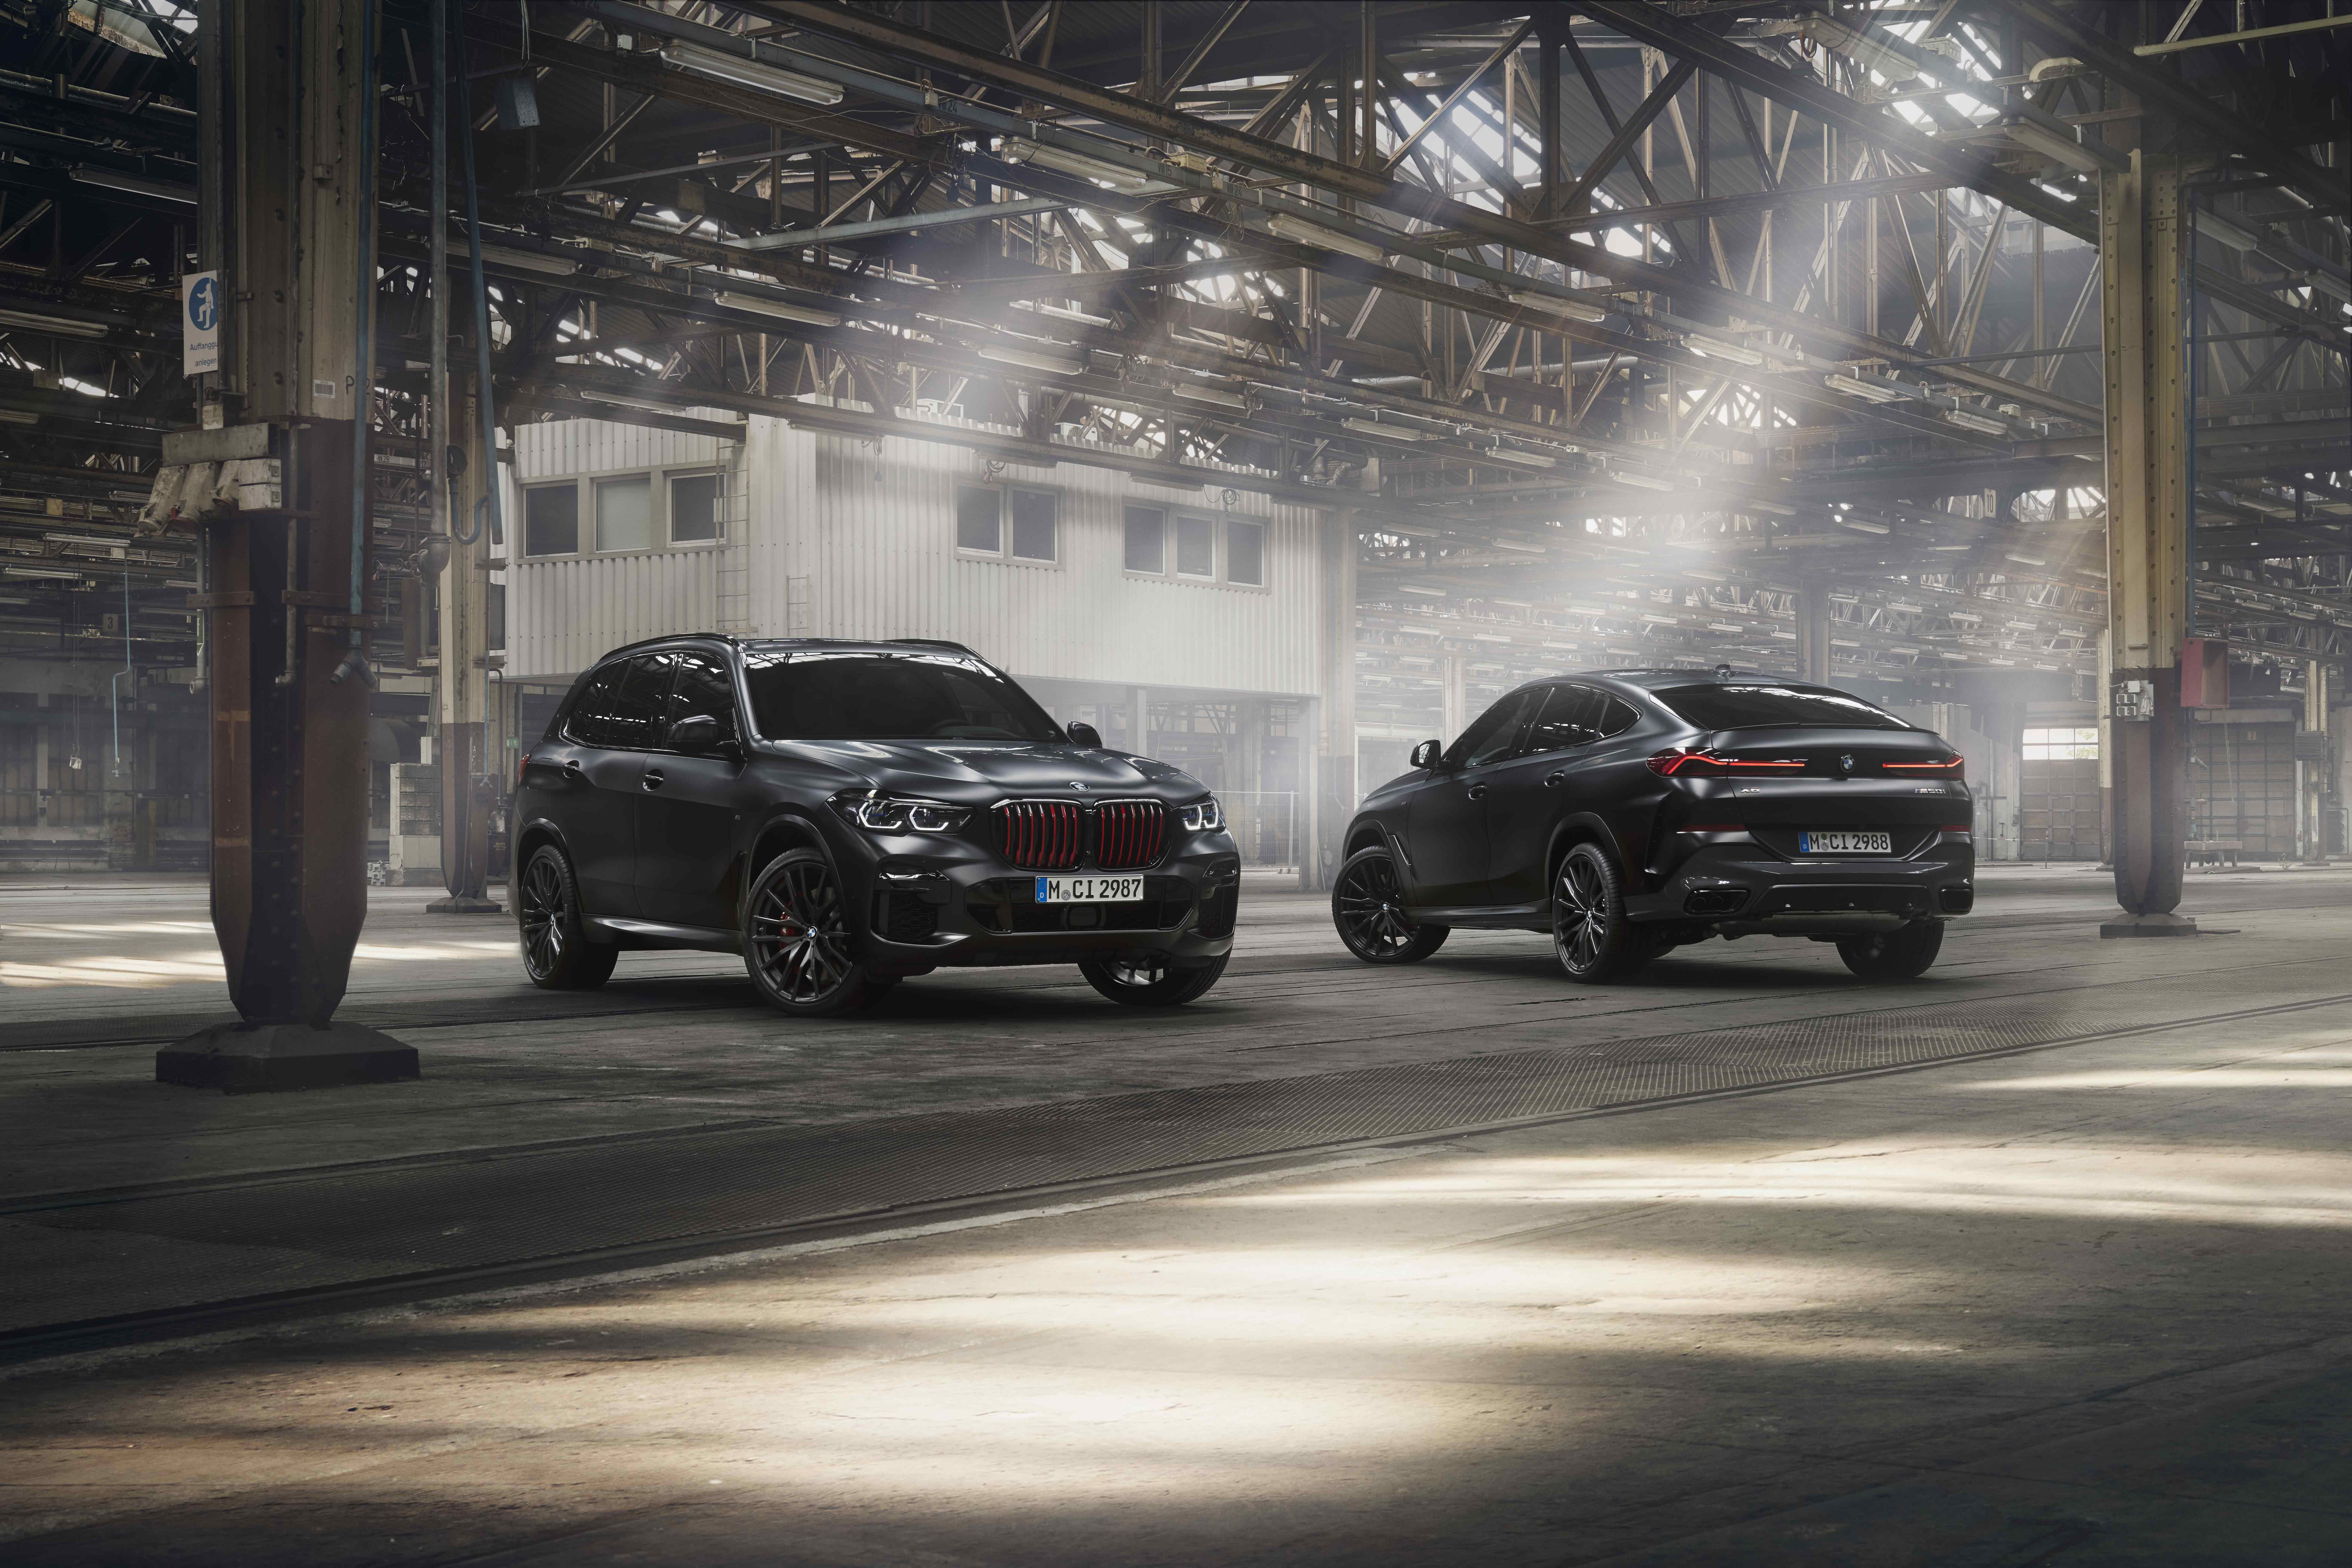 BMW X5 and BMW X6 limited editions Black Vermilion plus  BMW X7 limited edition in Frozen Black metallic.